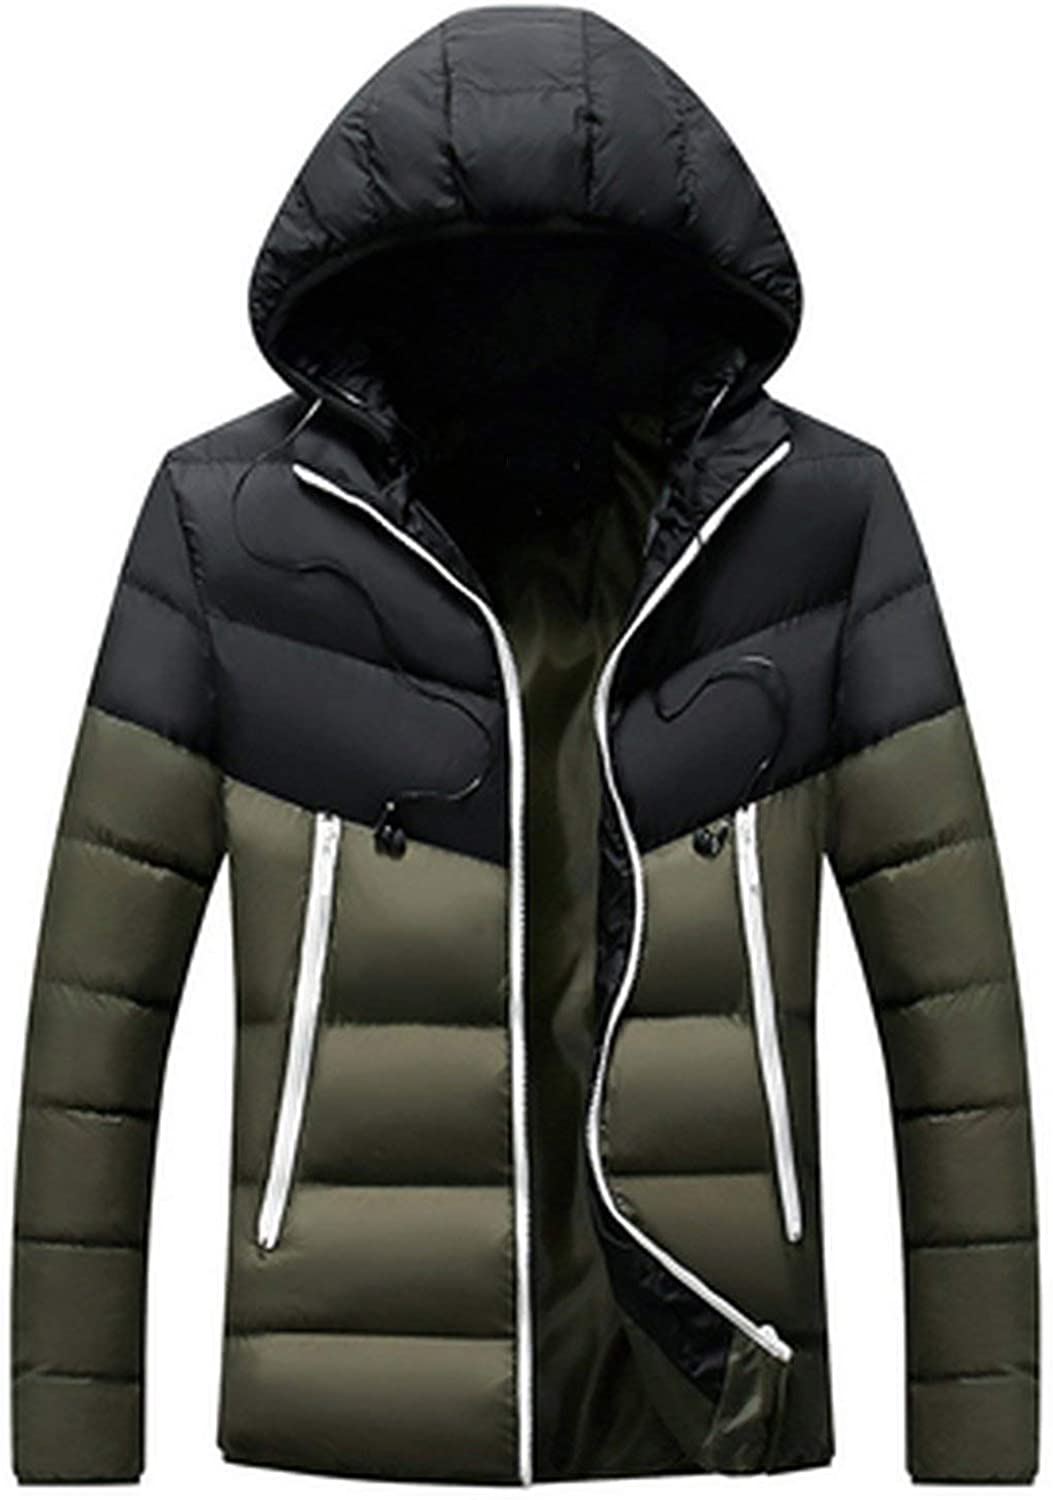 Winter Jacket Mens Cotton Thick Thermal Parkas Hoodies Coats Windbreaker Jackets